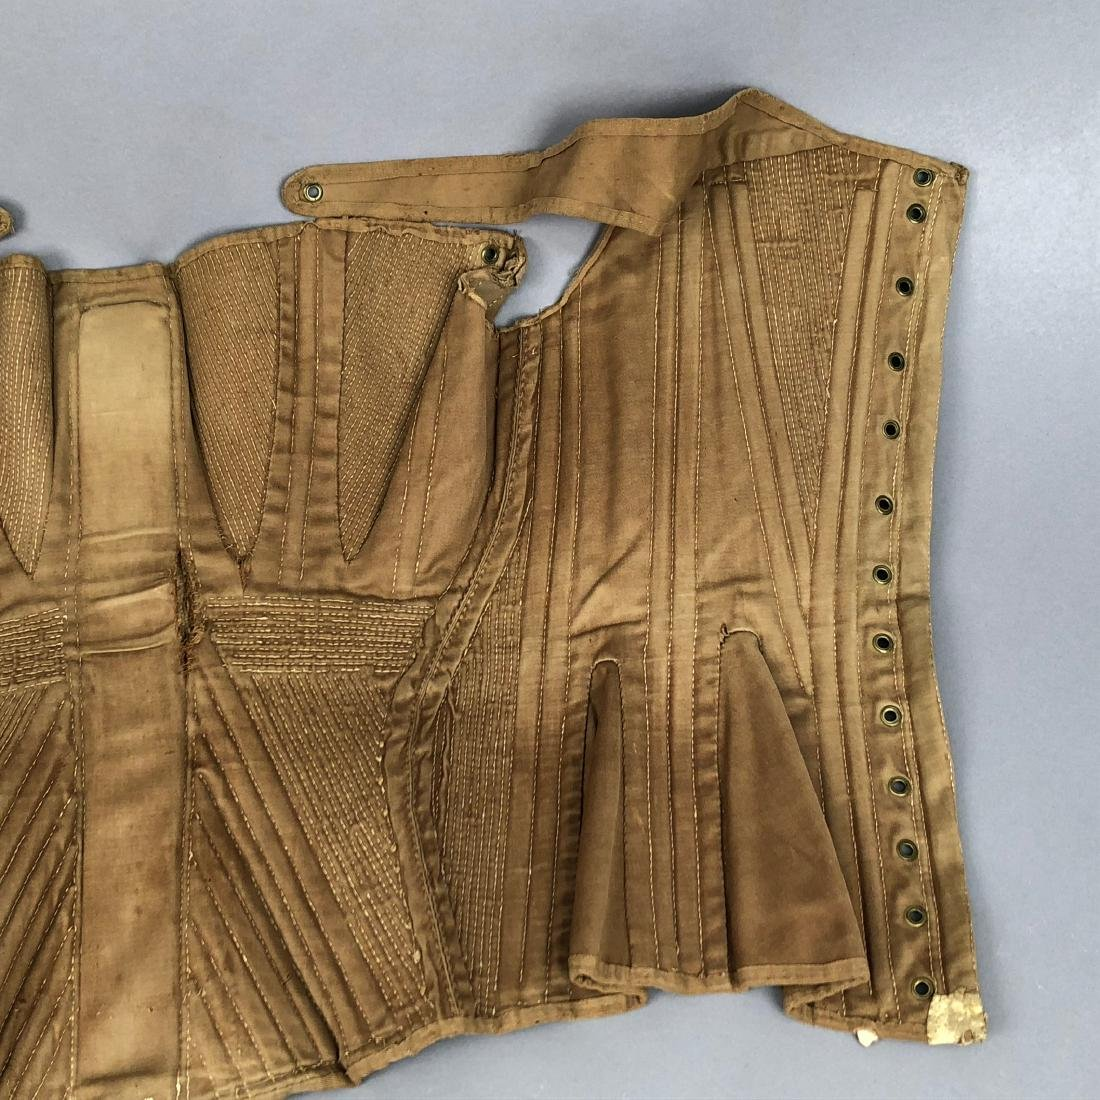 BROWN COTTON SATEEN CORSET, c. 1835 - 8